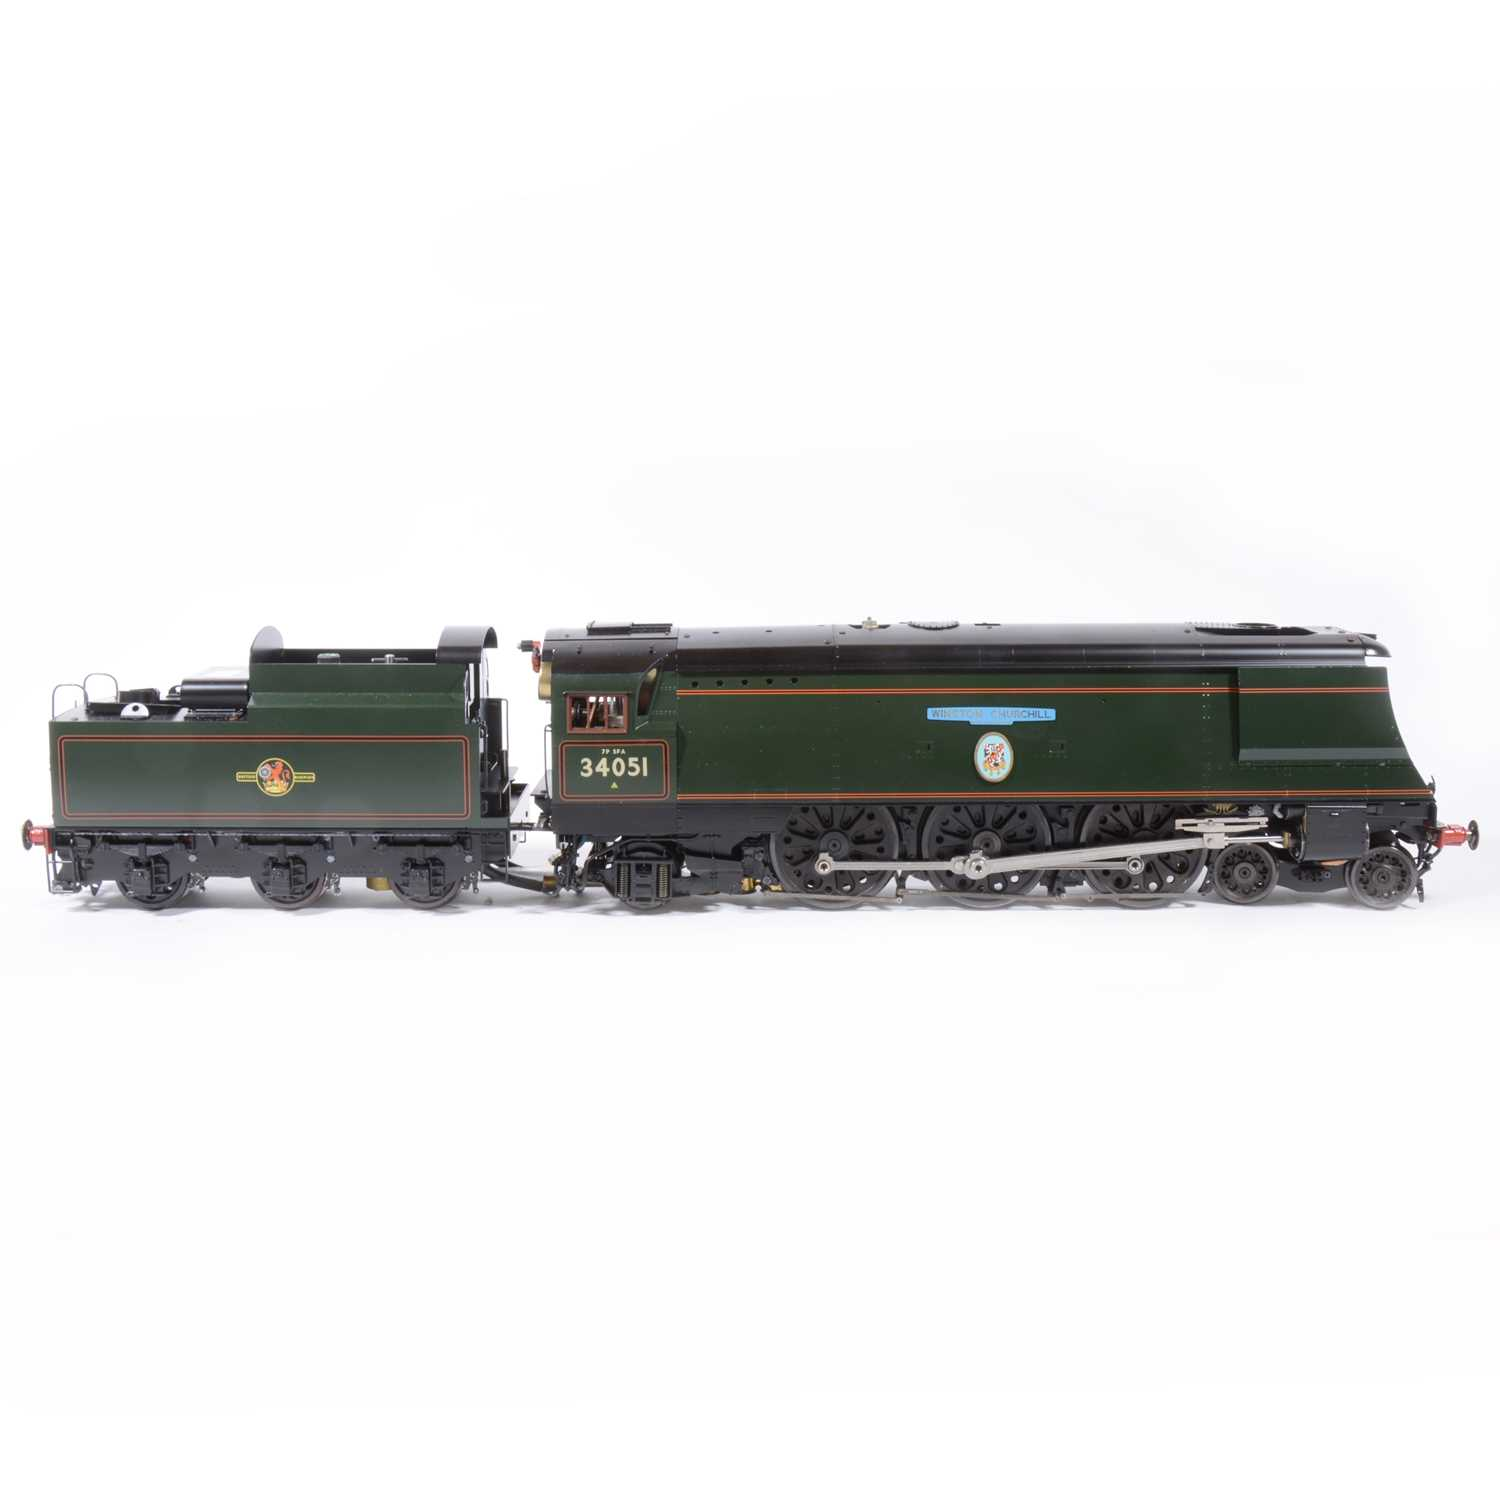 Lot 1 - Aster Hobby live steam, gauge 1 / G scale, 45mm locomotive and tender; 'Winston Churchill' BR no.34051, in wooden case.